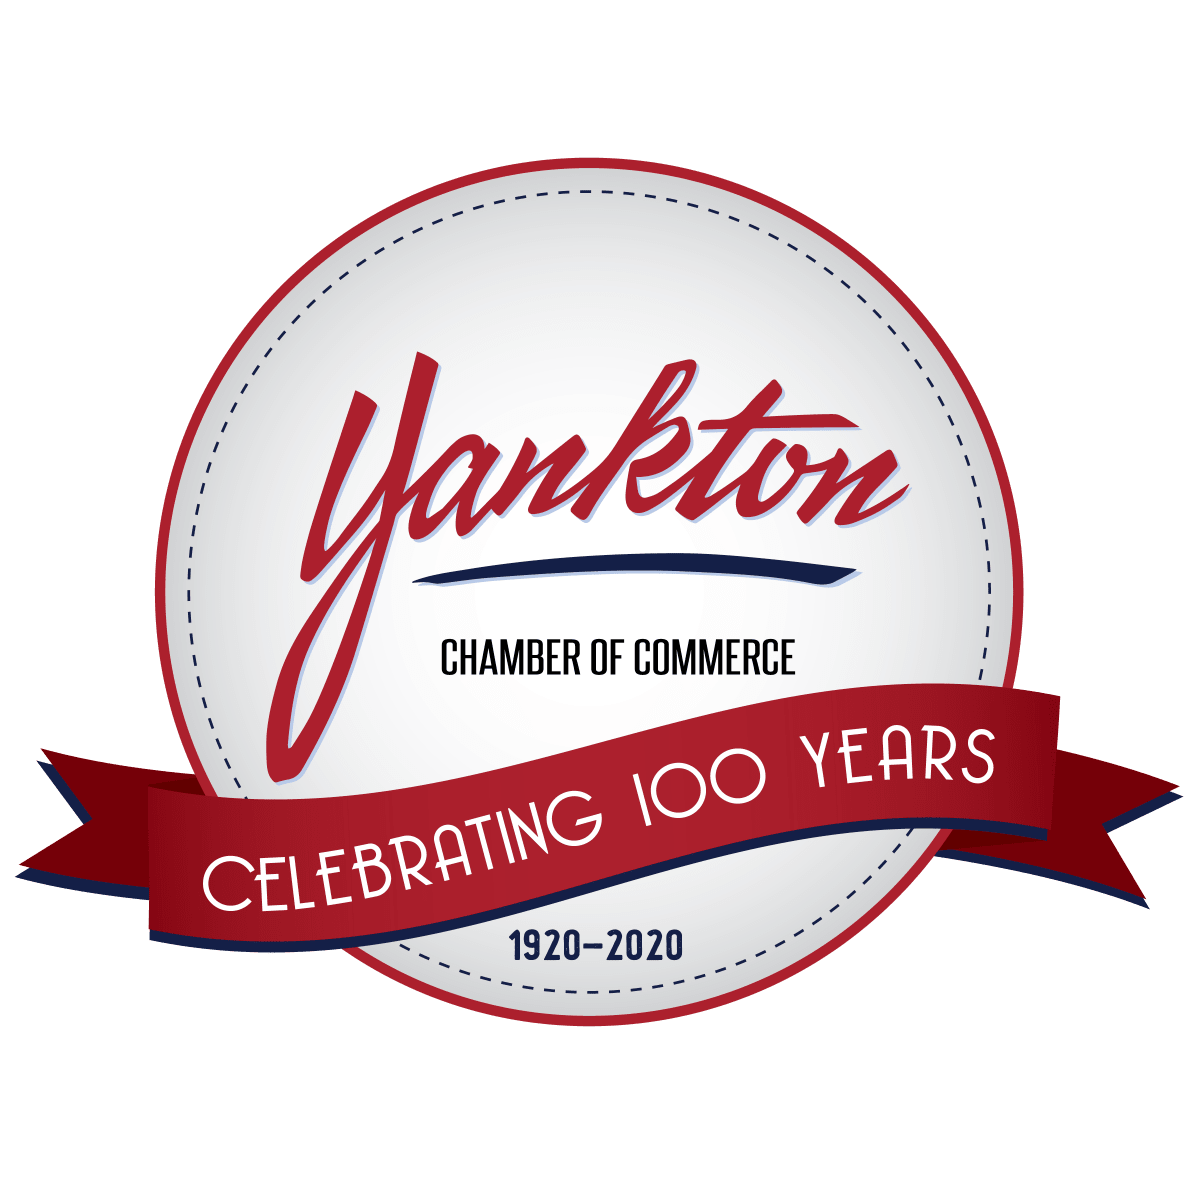 Yankton Chamber of Commerce Logo